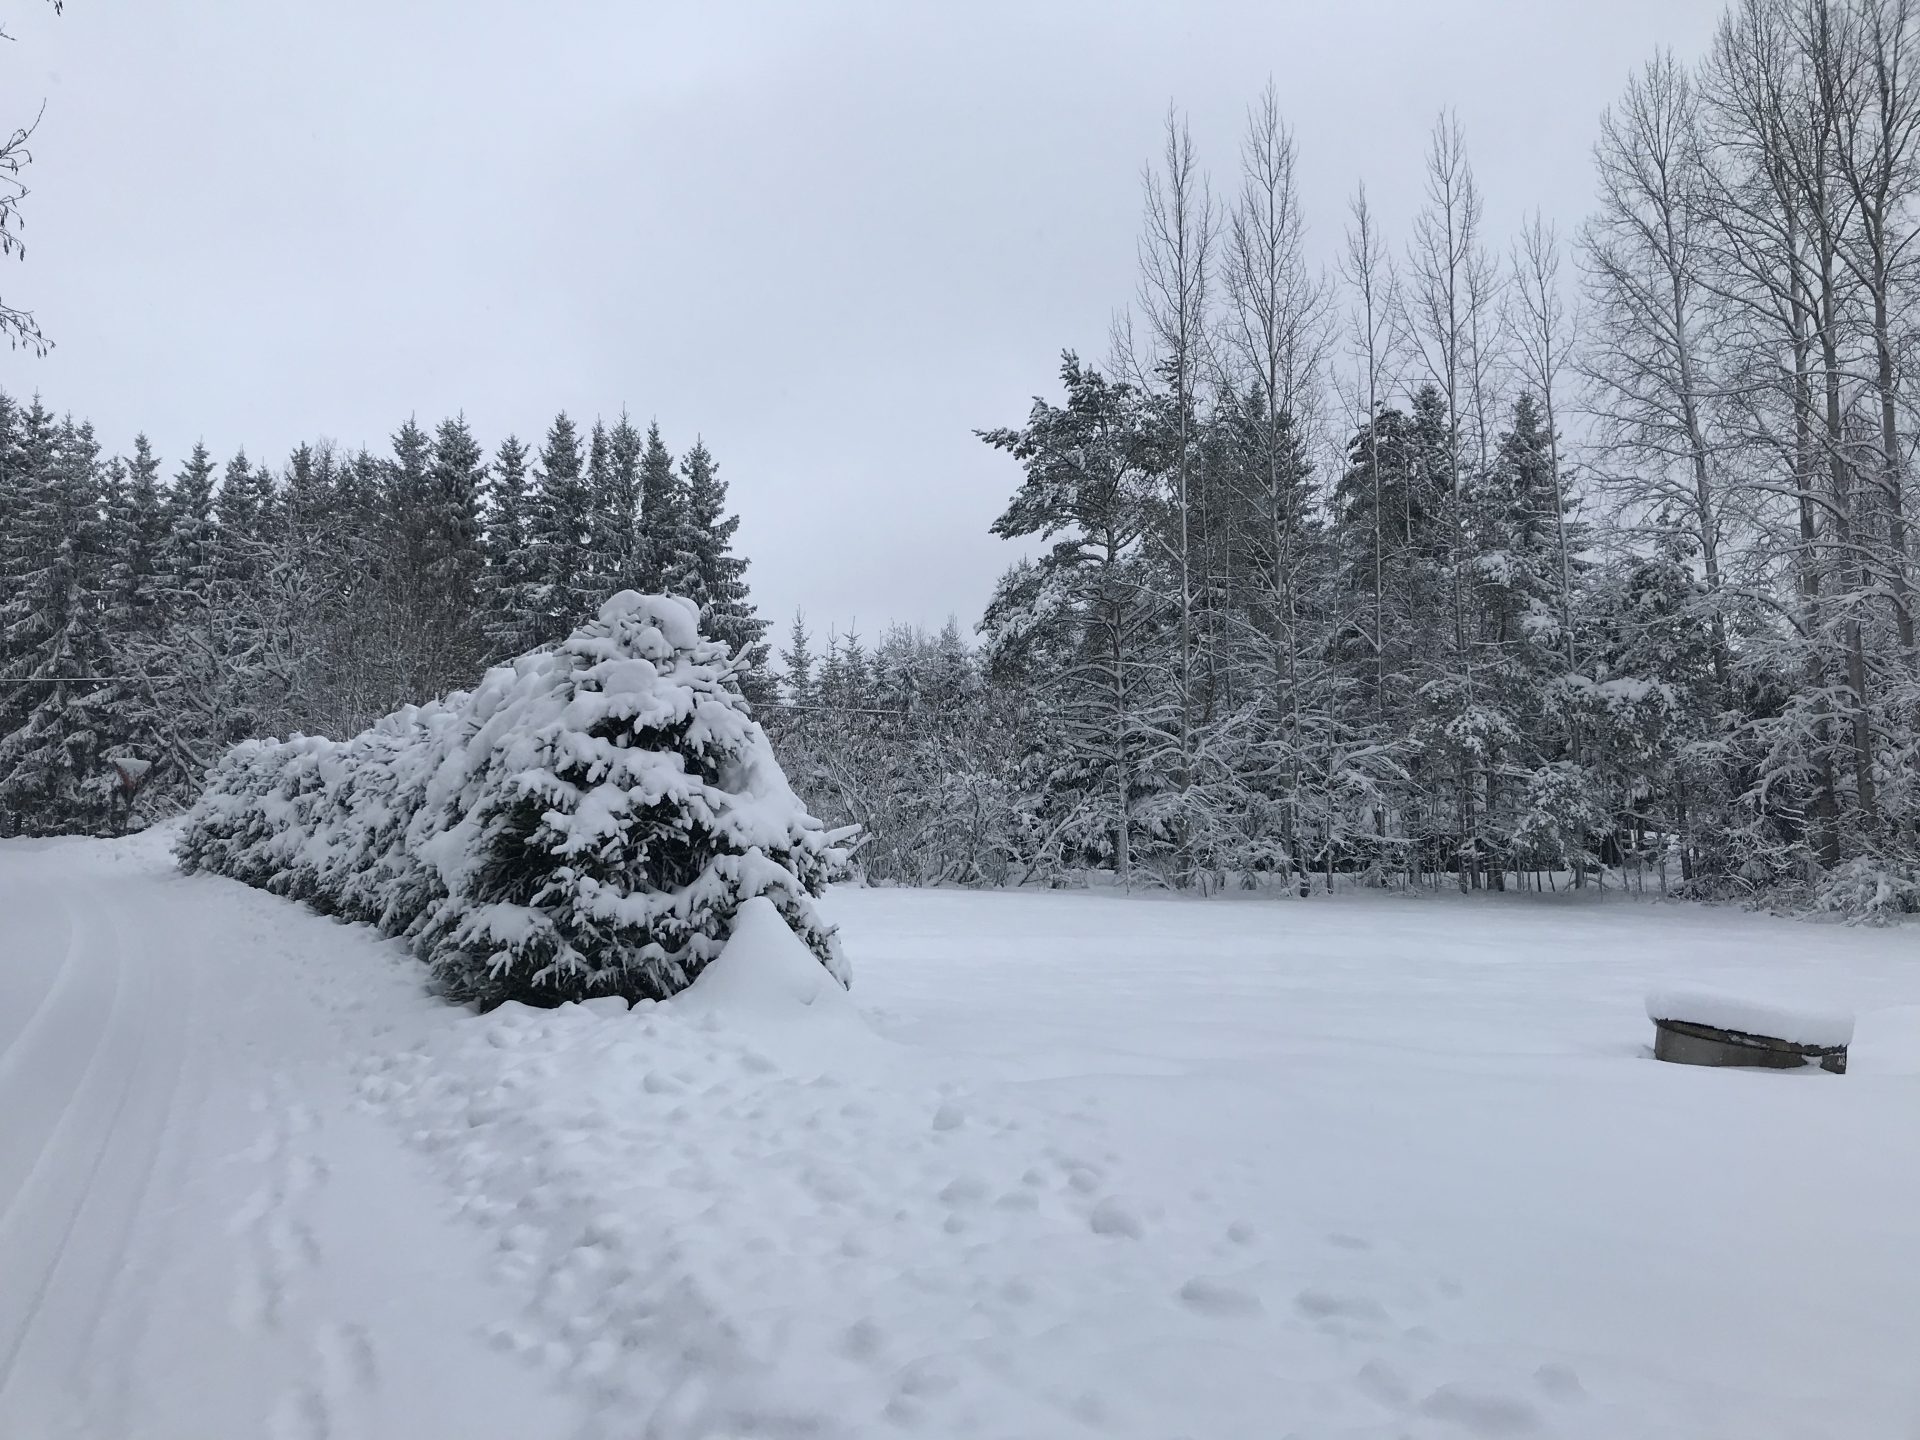 Very wintry greetings from Finland